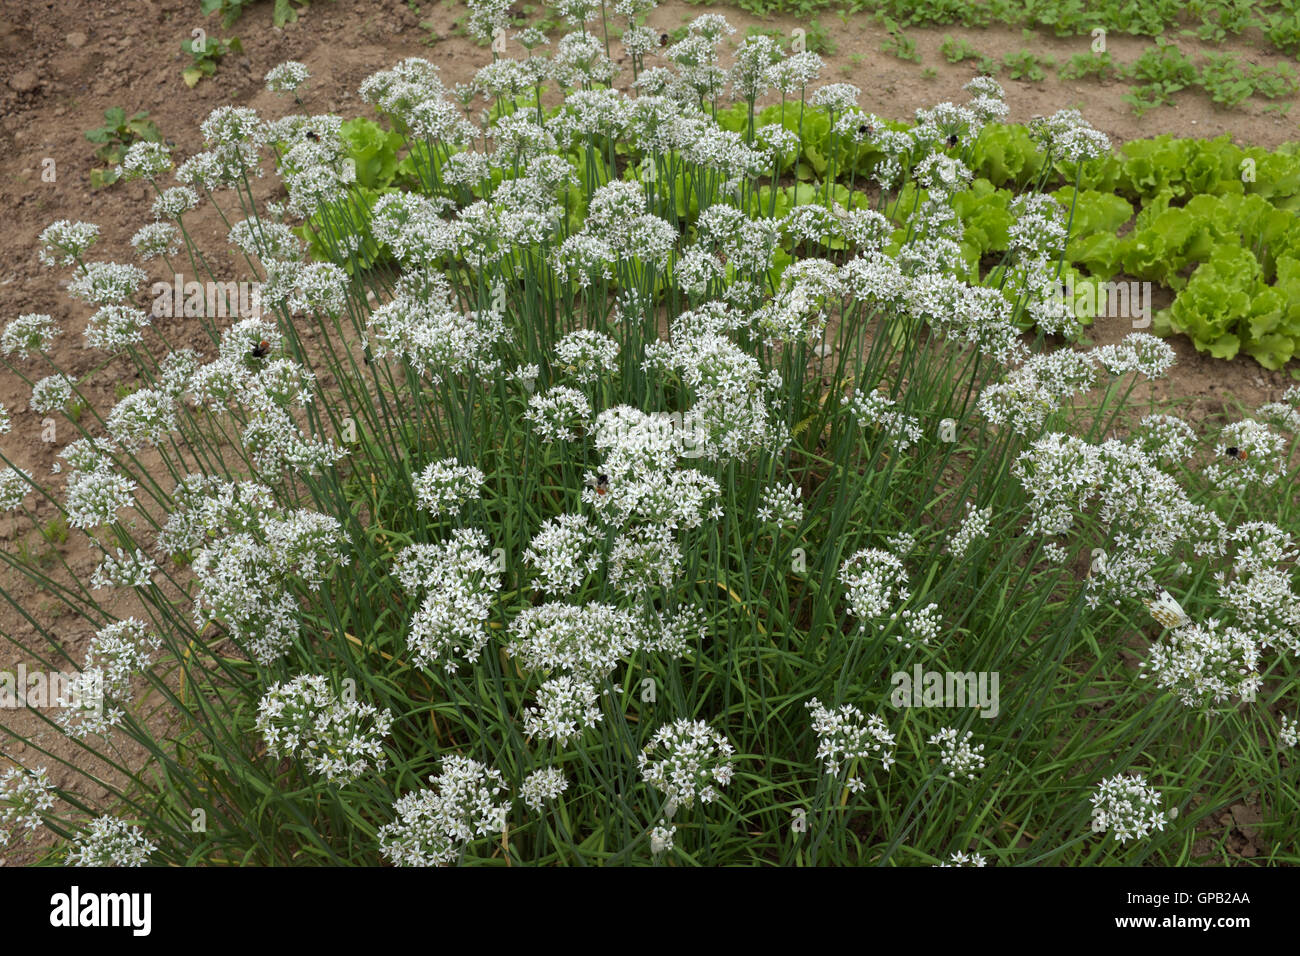 Flowers of fragrant-flowered garlic or Chinese chives. - Stock Image